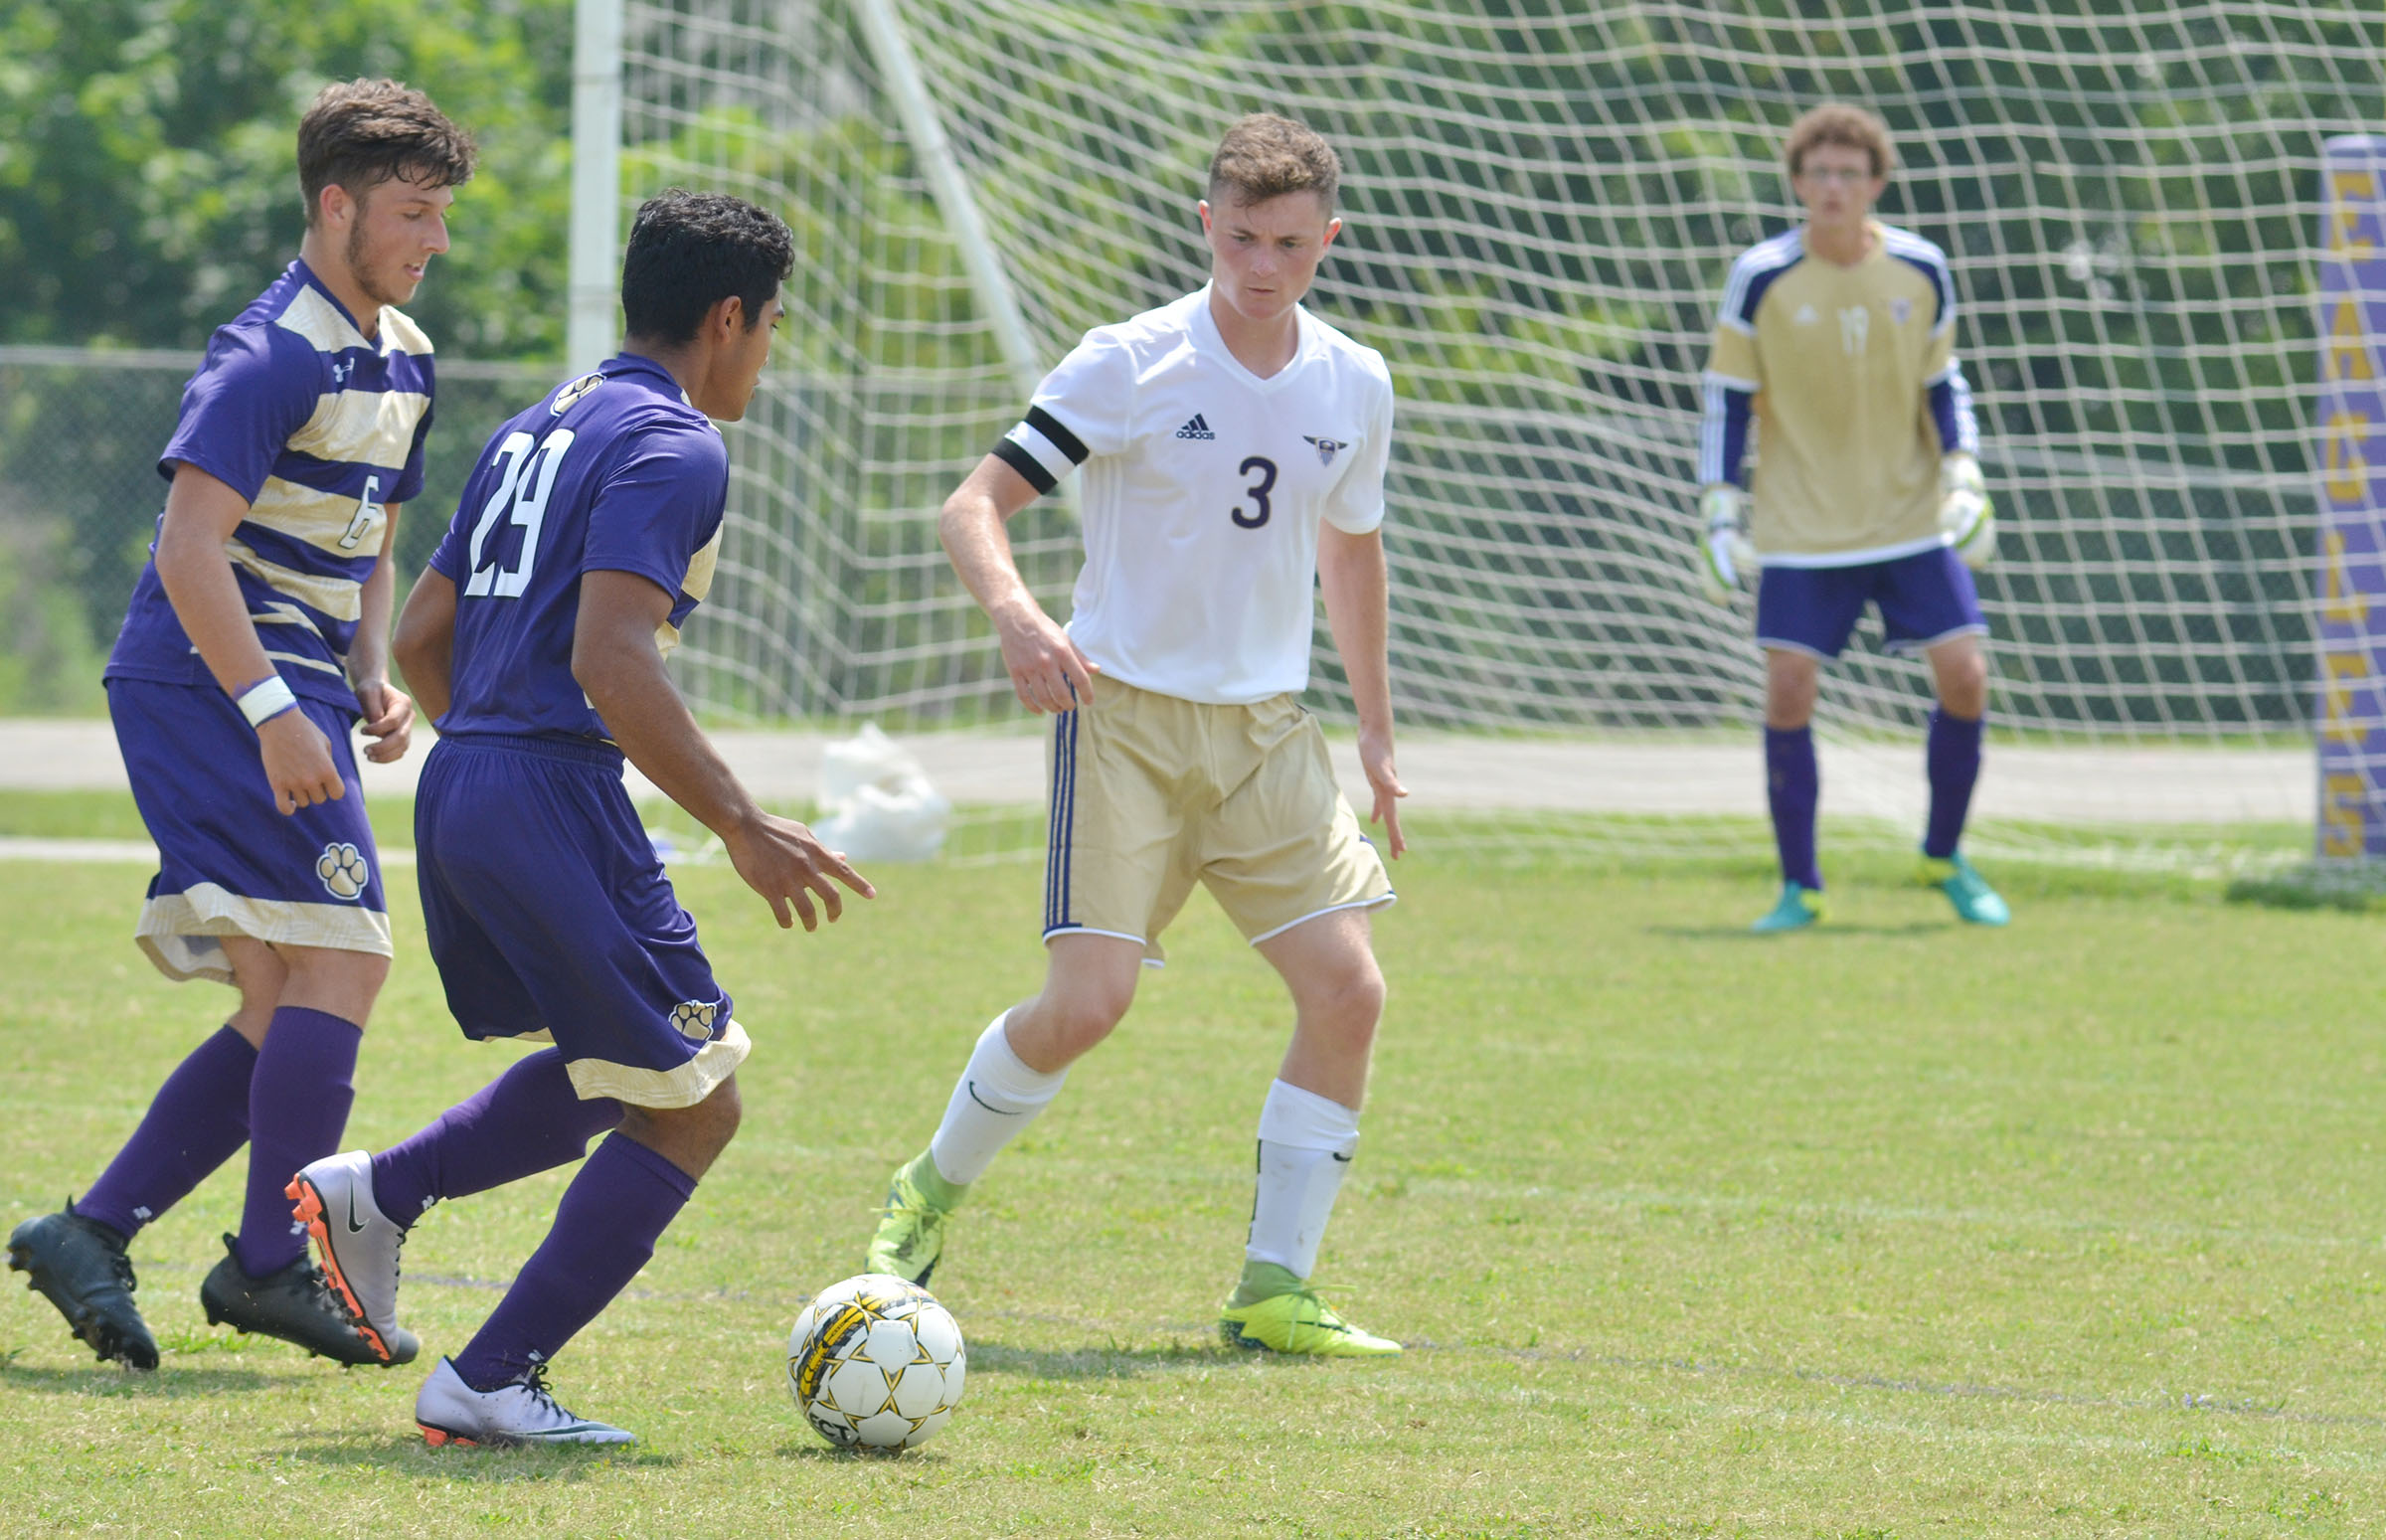 CHS senior Bryce Richardson plays defense.